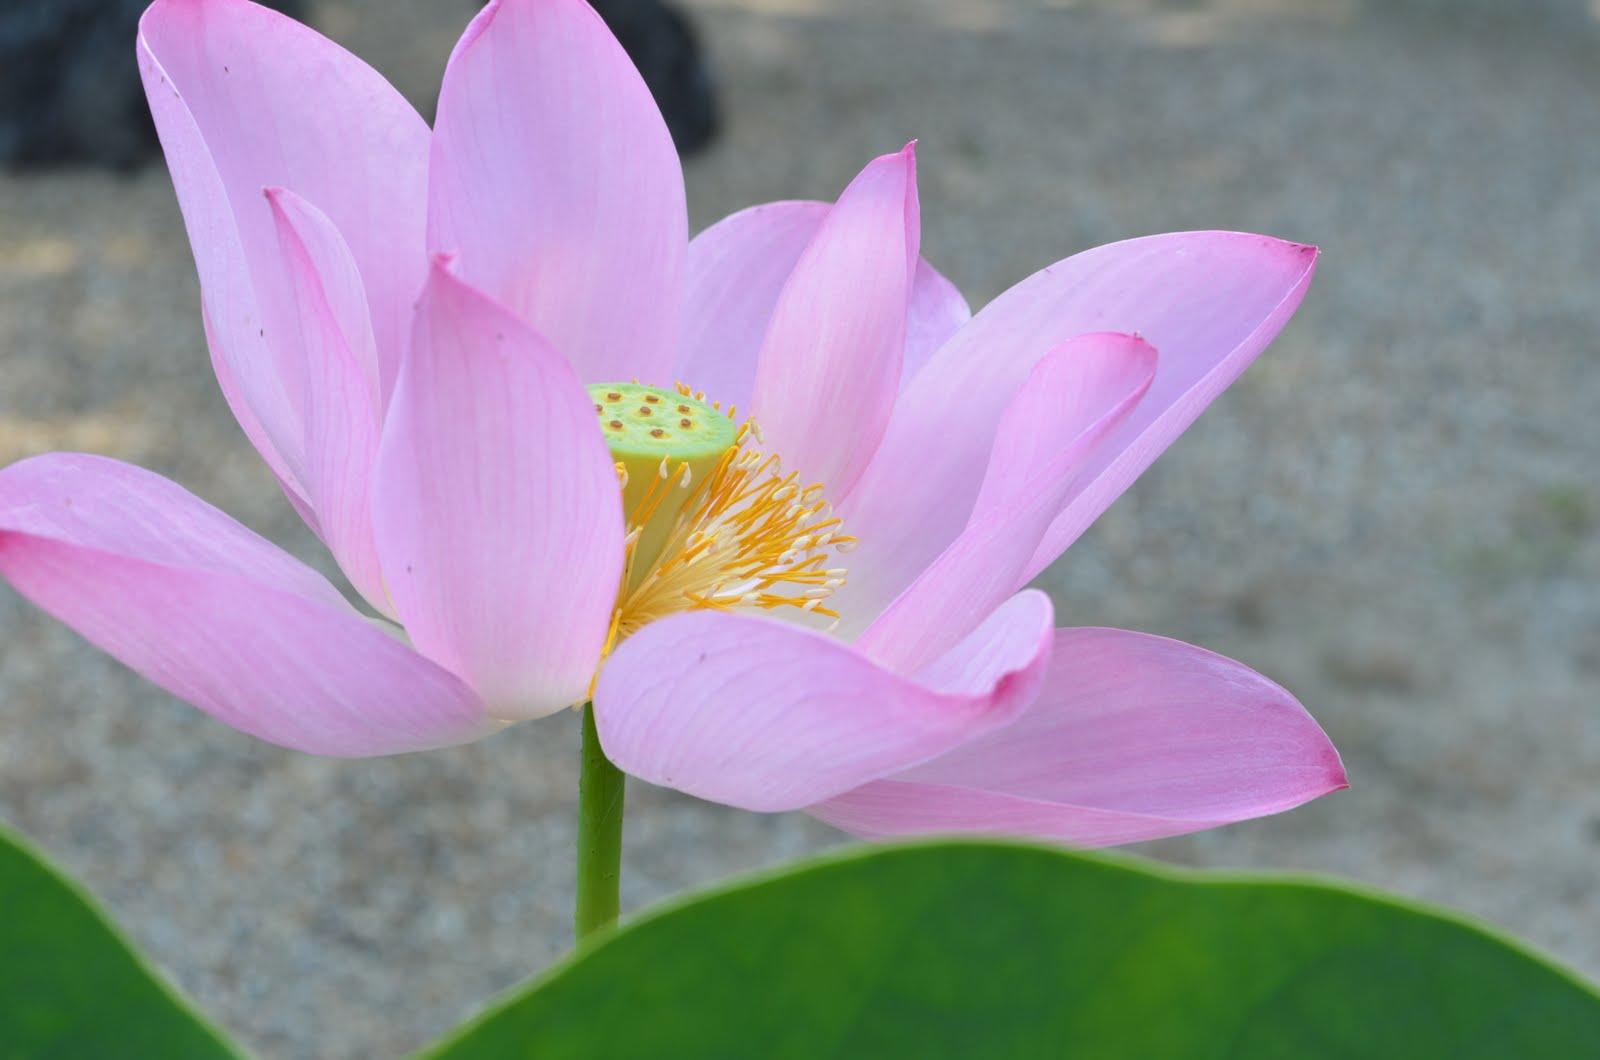 Sarahs English Writing Blog Lotus Flower In Nara